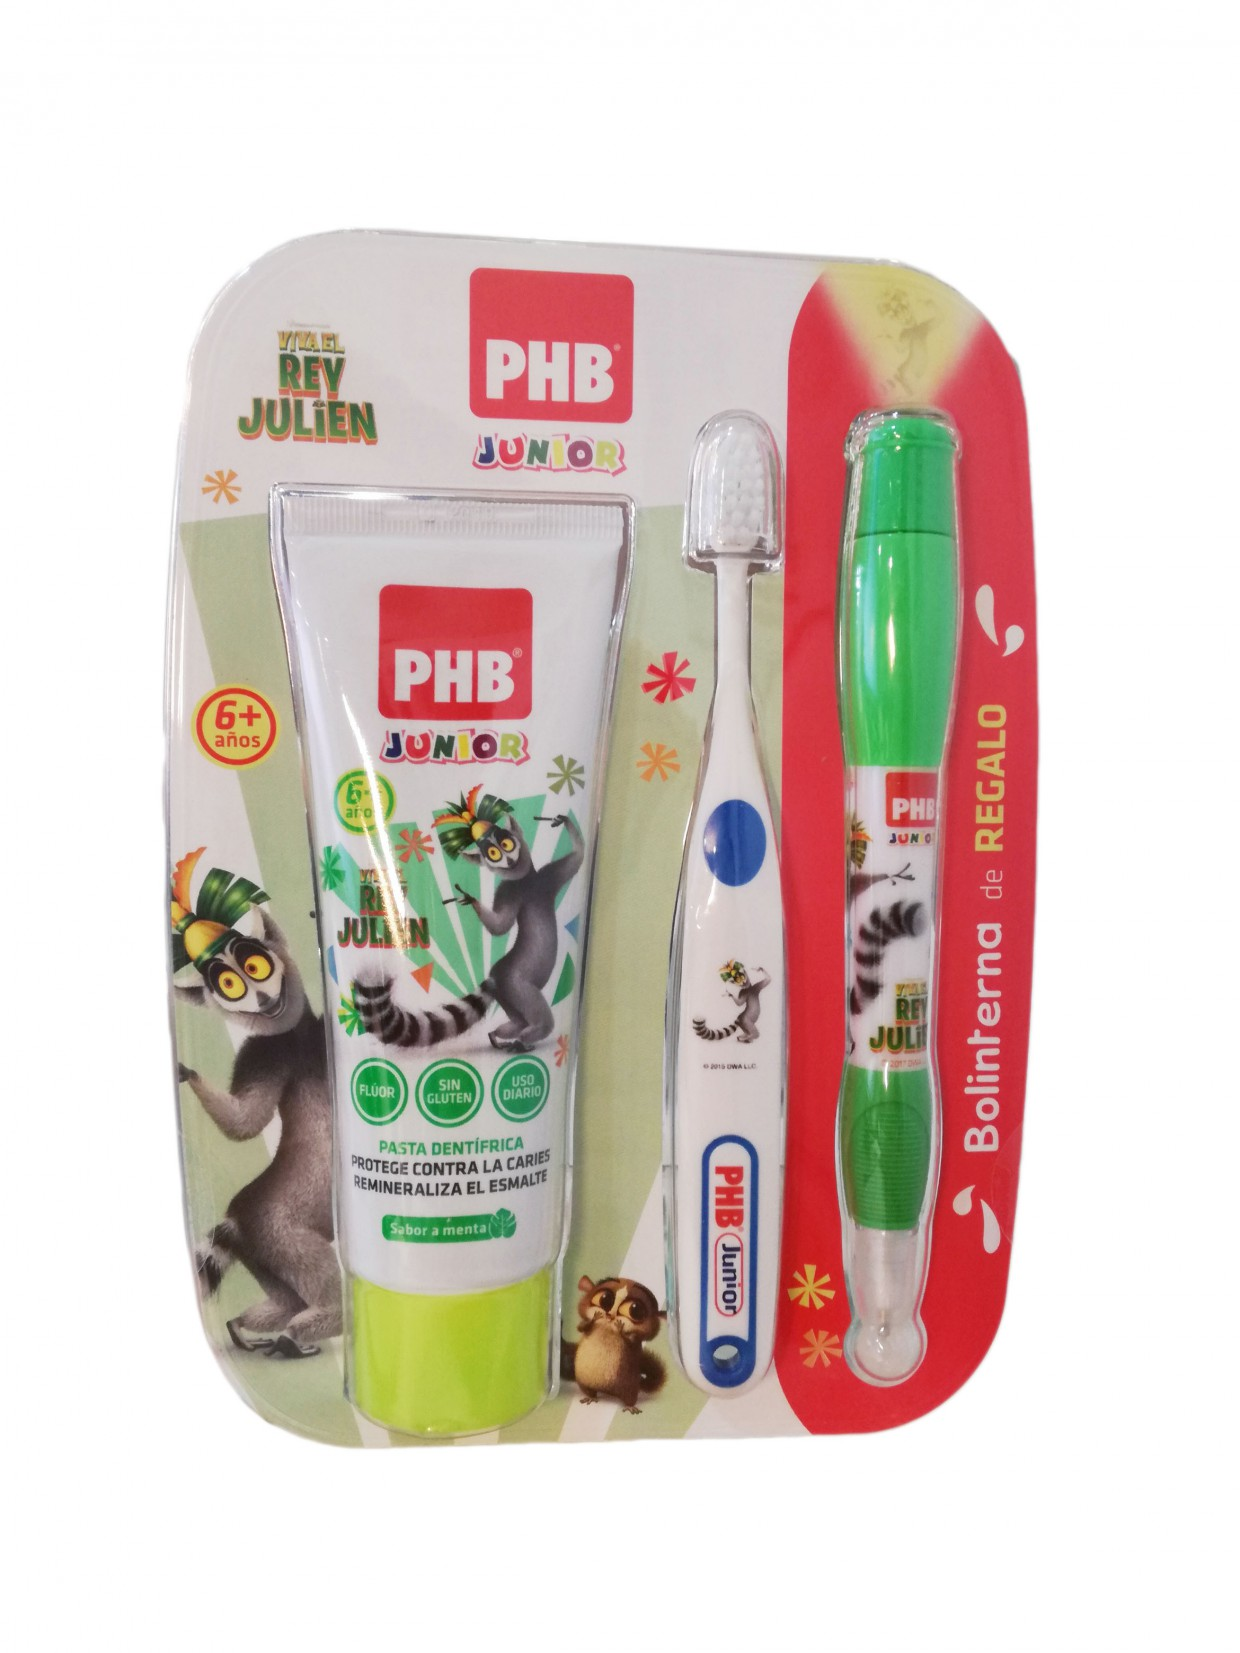 phb junior pack cepillo+pasta+linterna regalo